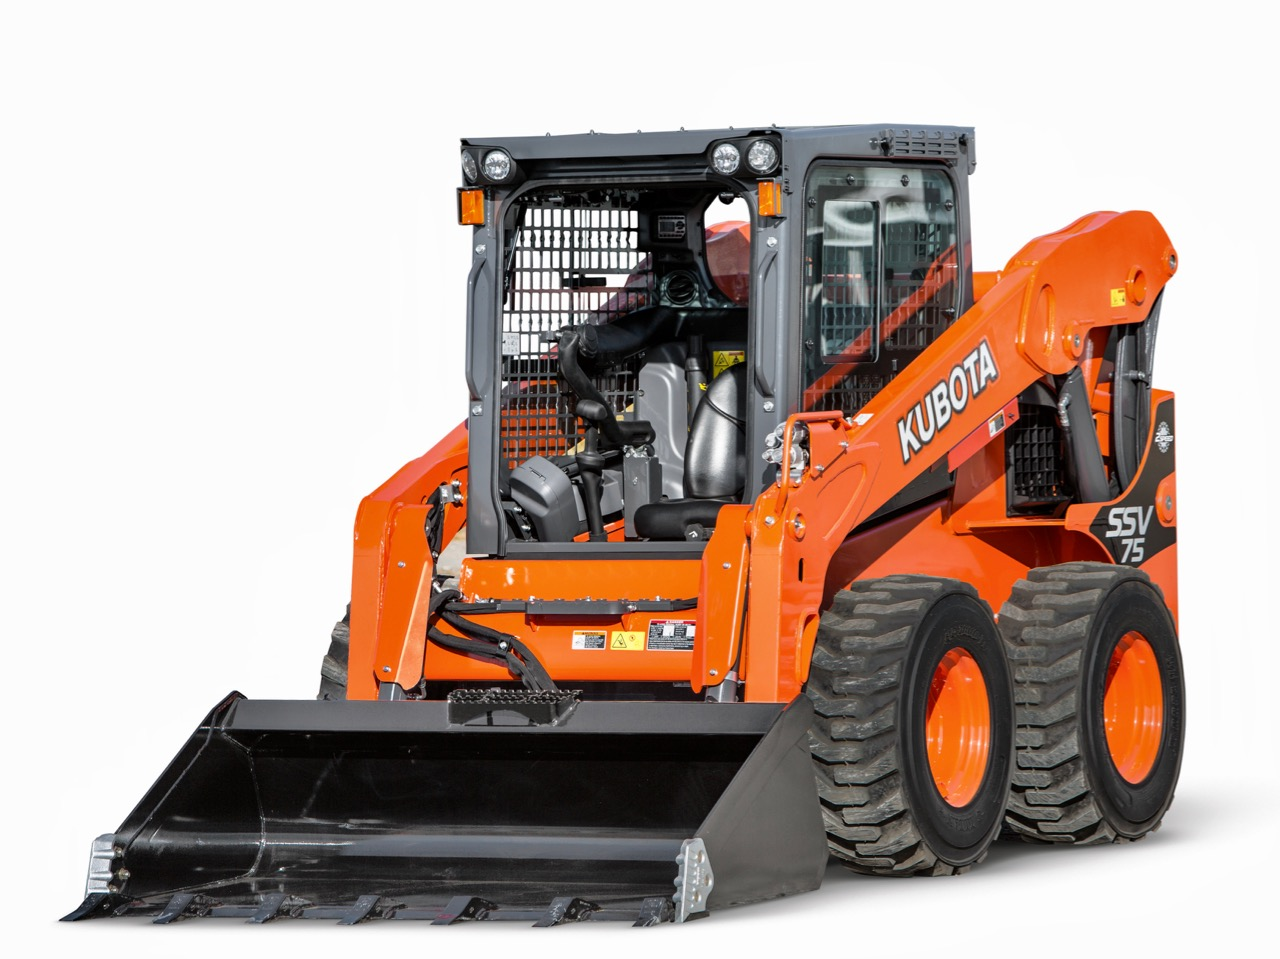 New Inventory from Kubota and Woods Alderman's Incorporated